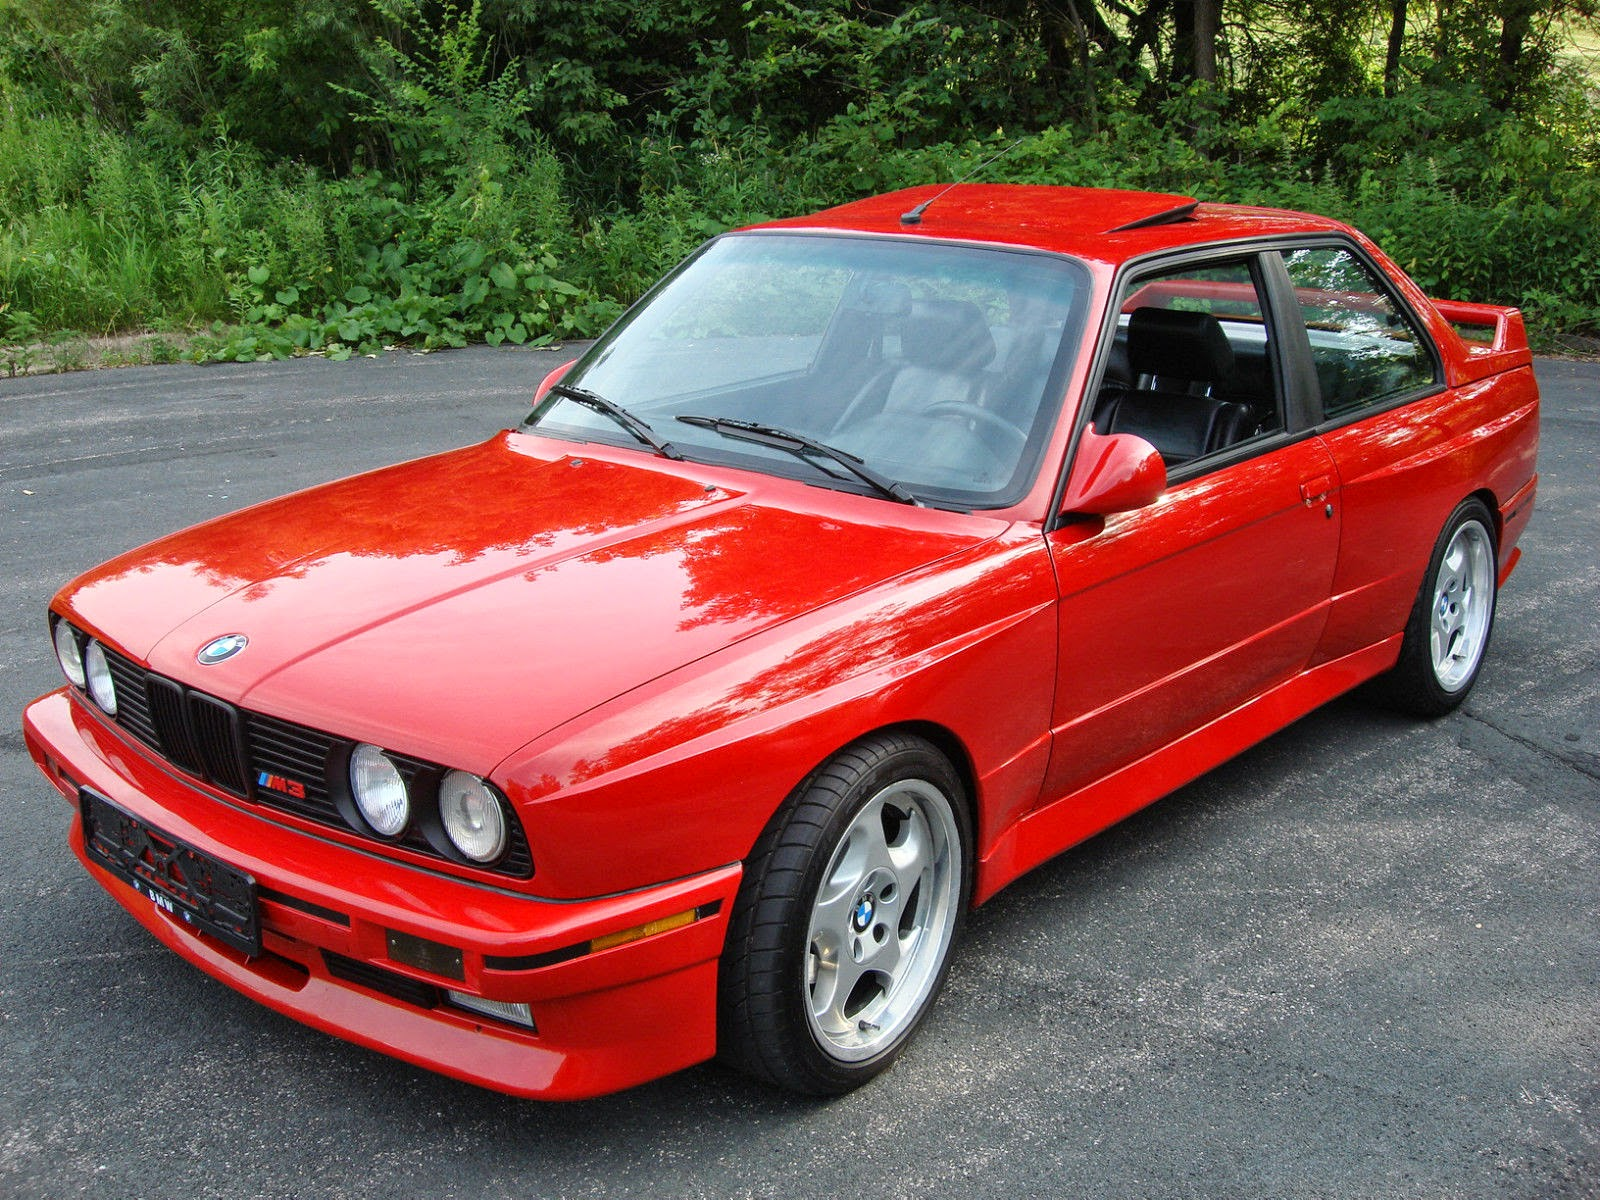 No one will deny that the e30 generation m3 isn t a sweet car it just isn t worth 5 times as much as an e36 or e46 in similar condition except that